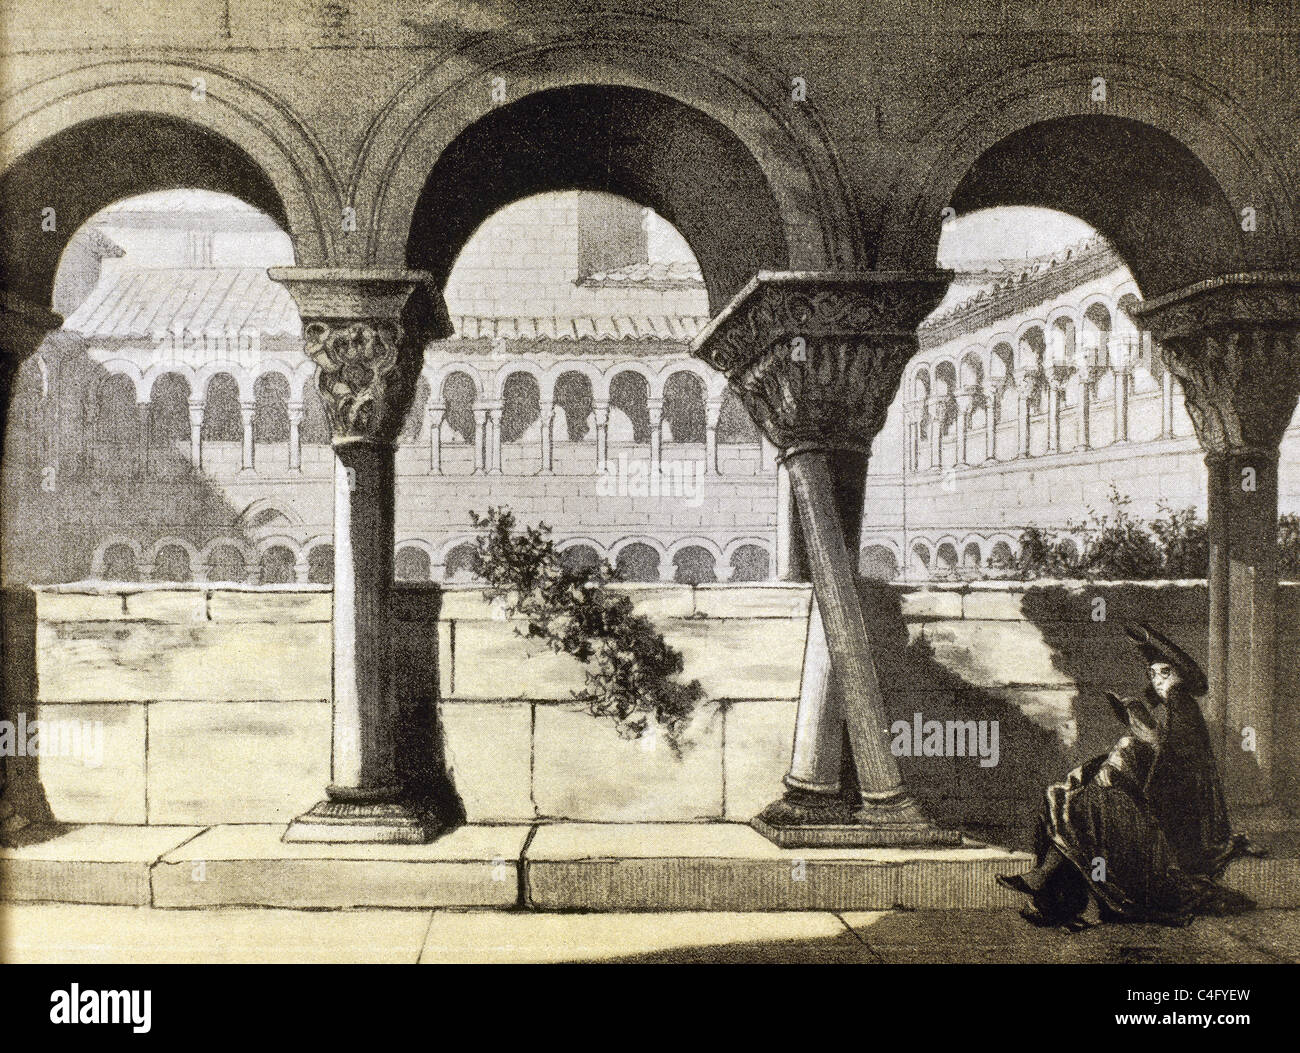 Abbey of Santo Domingo de Silos. Cloister. Castile and Leon. Spain. Nineteenth-century Engraving. - Stock Image